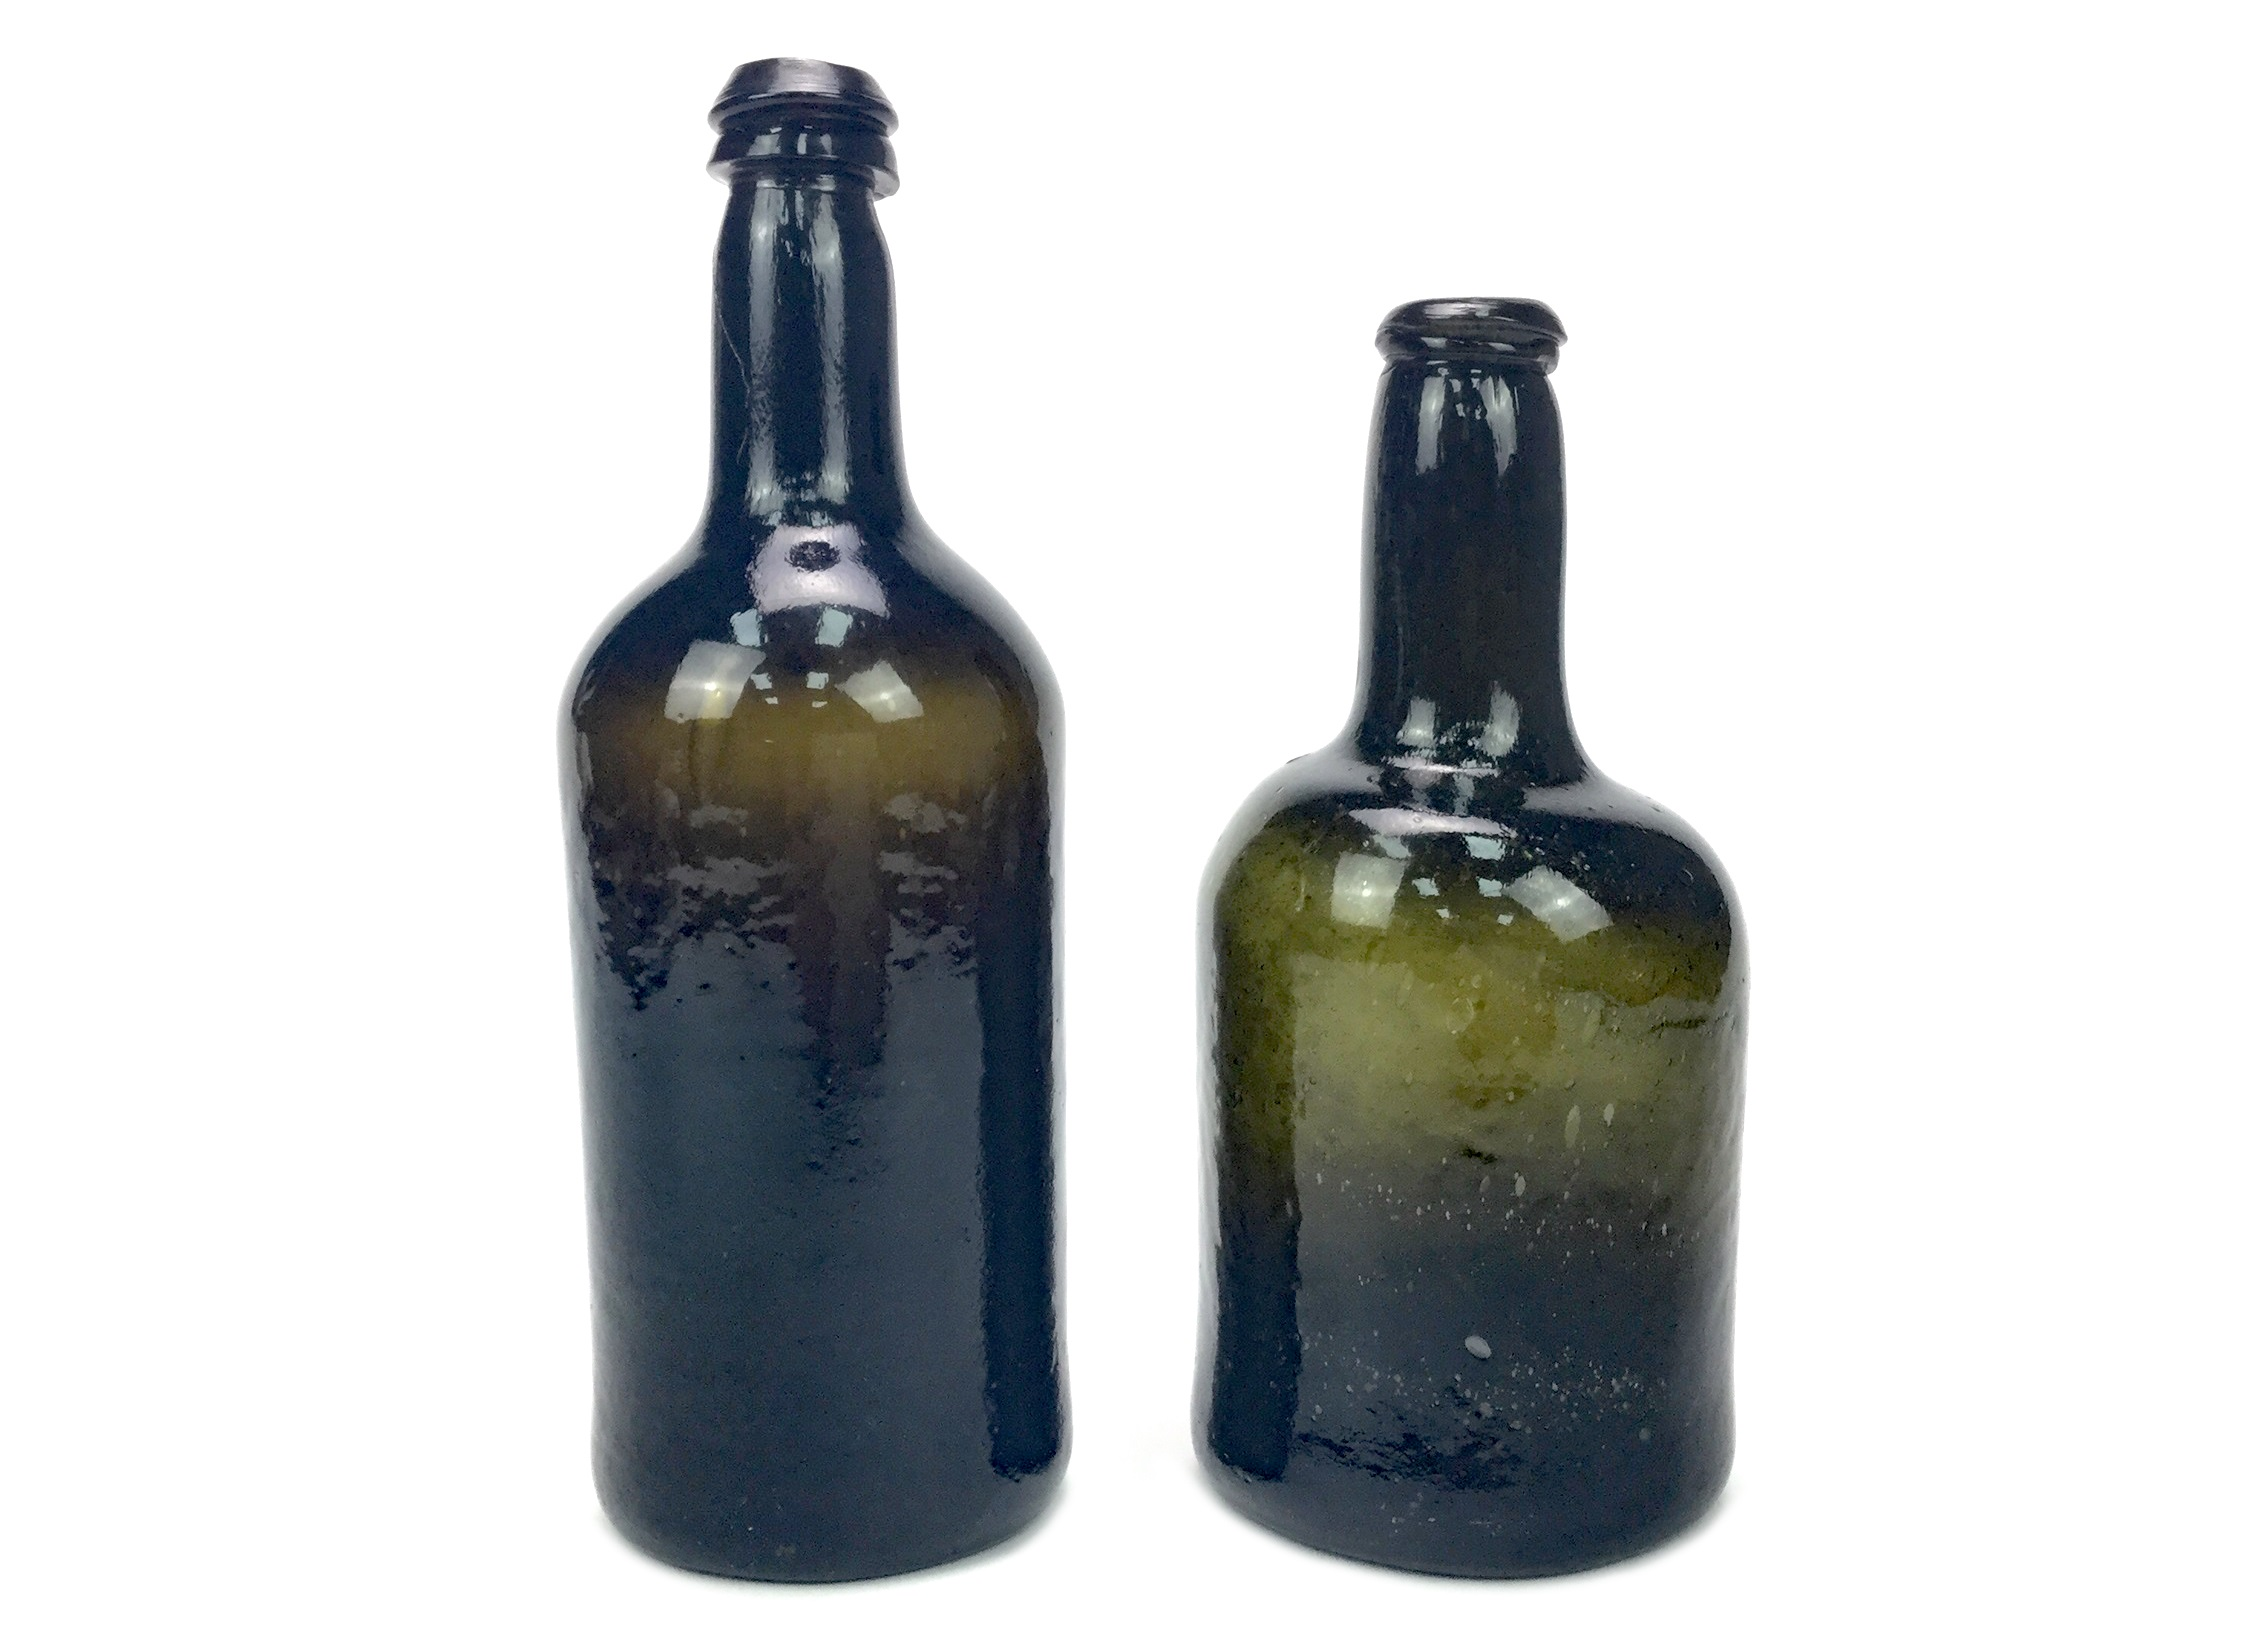 Lot 1251 - A LOT OF TWO 18TH CENTURY GLASS BOTTLE